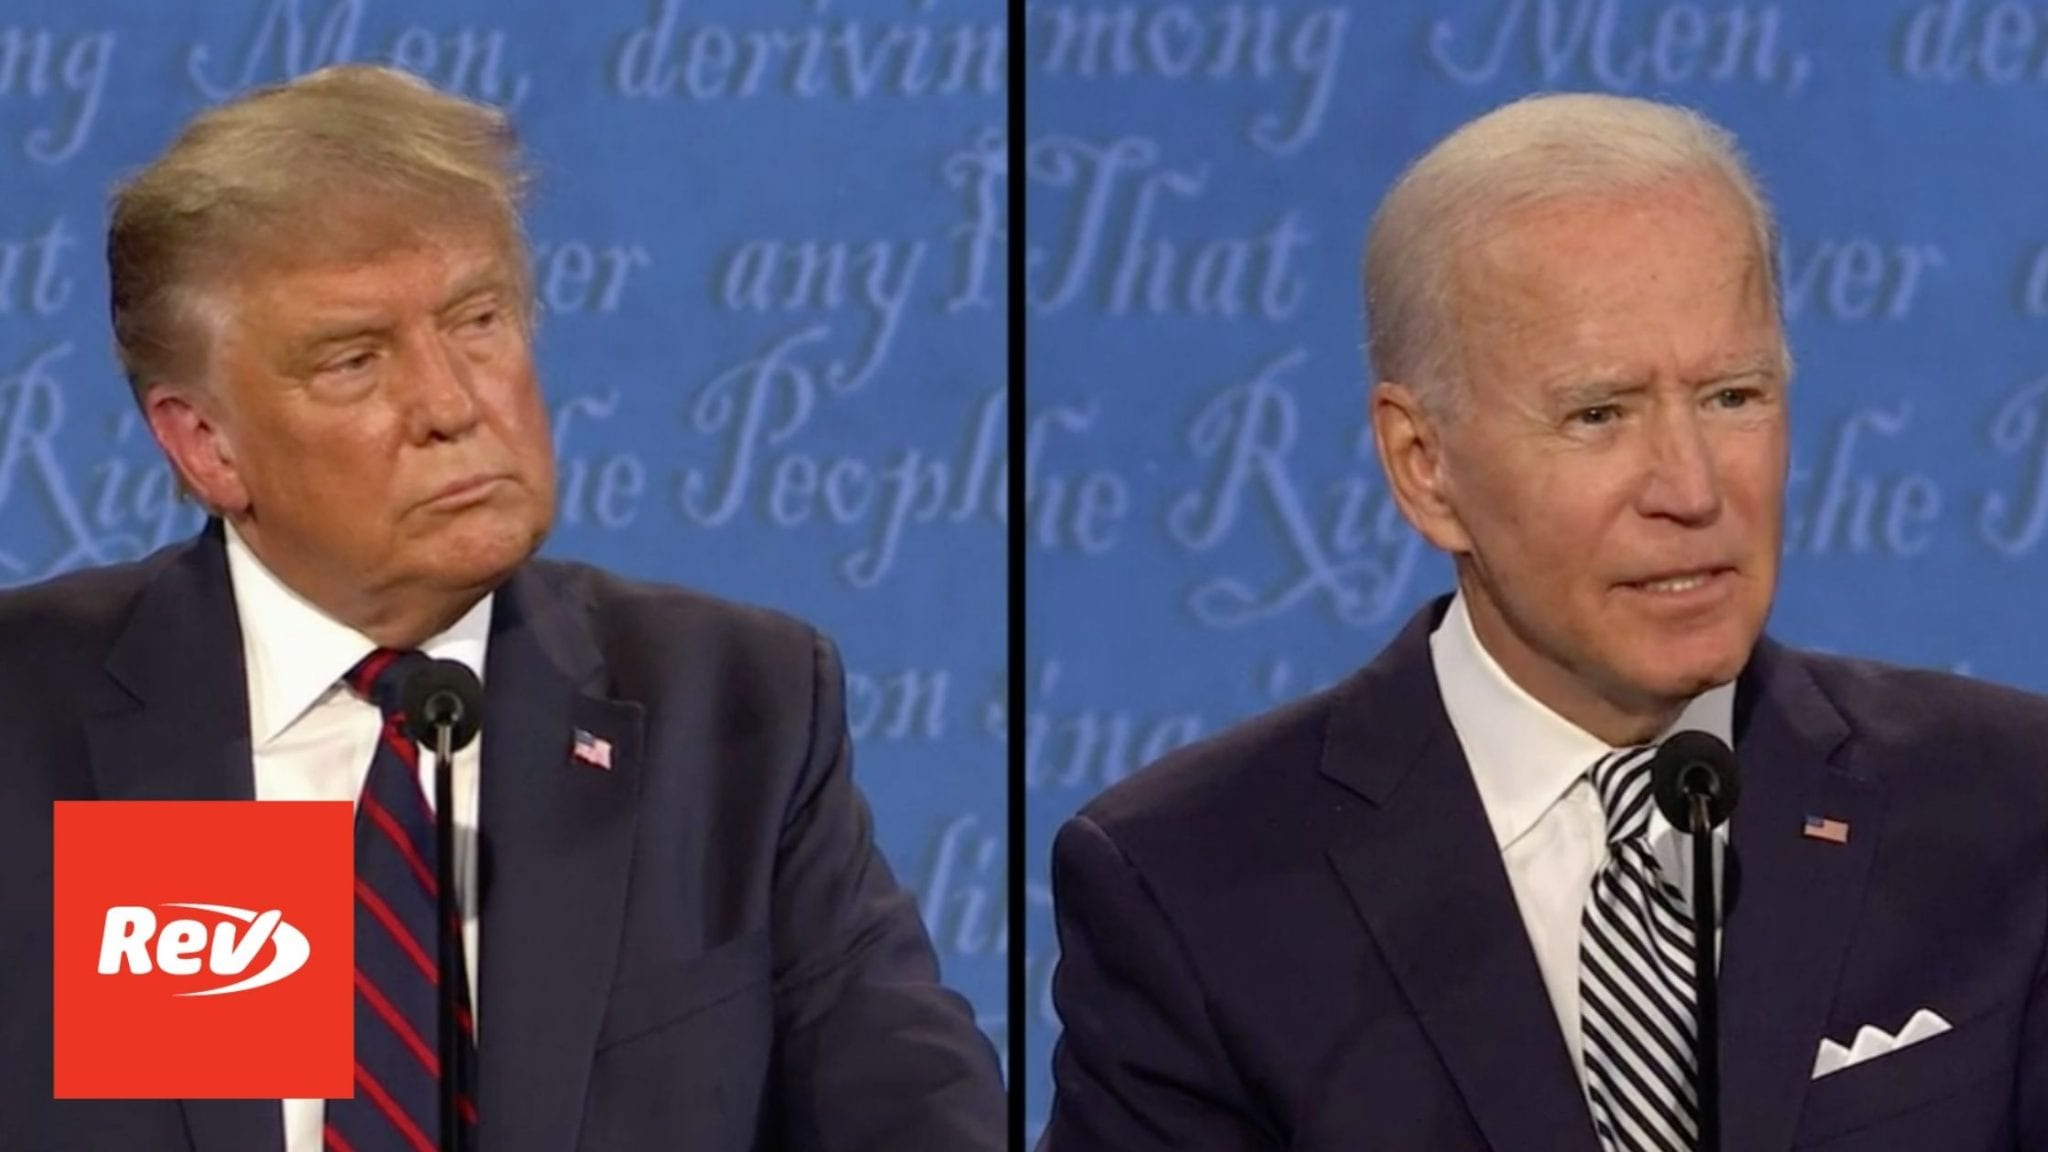 Donald Trump & Joe Biden 1st Presidential Debate Transcript 2020